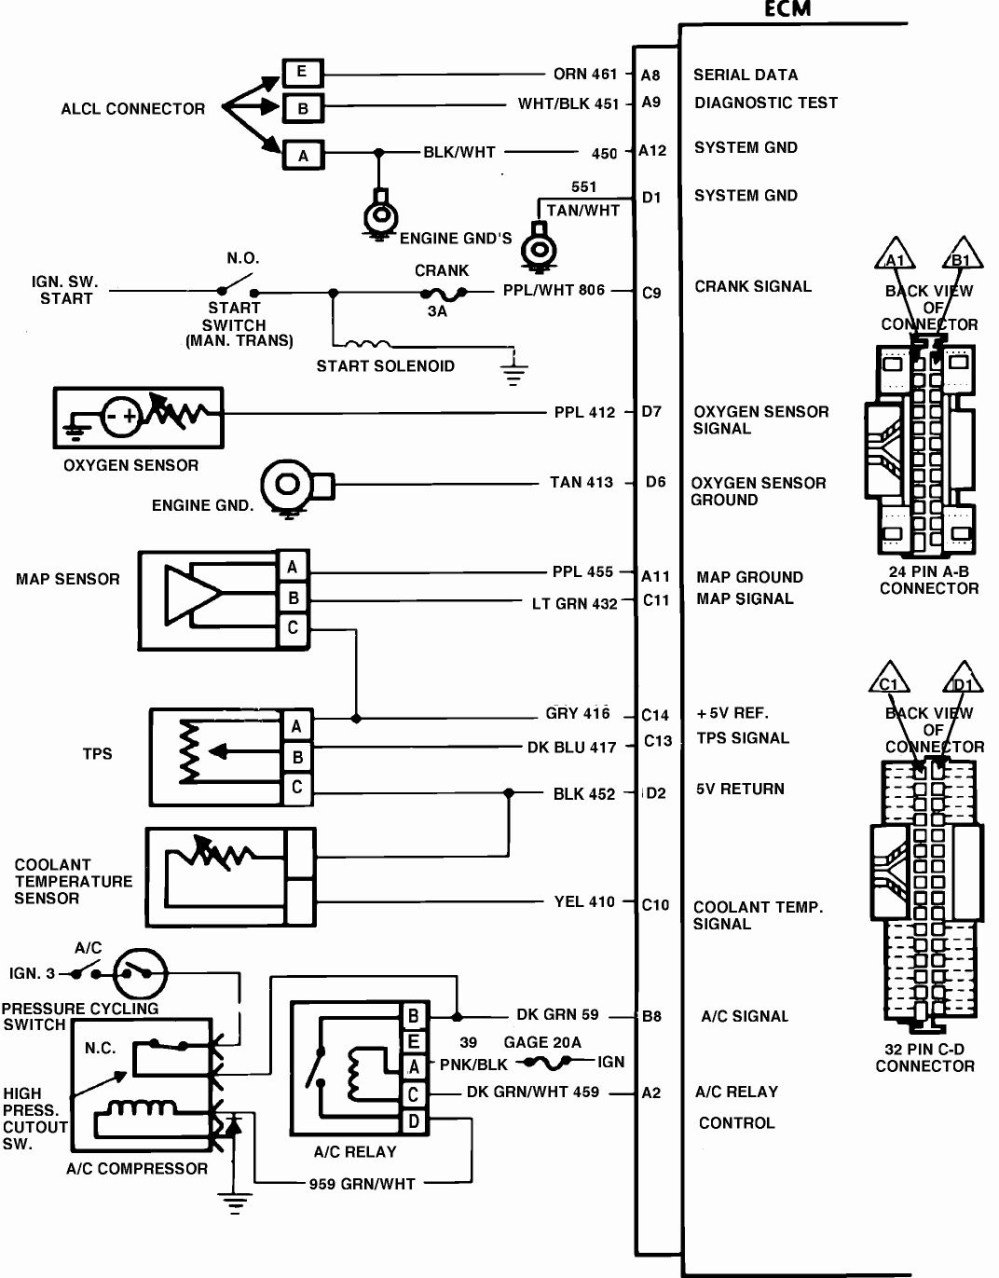 medium resolution of 2004 chevy cavalier stereo wiring diagram images